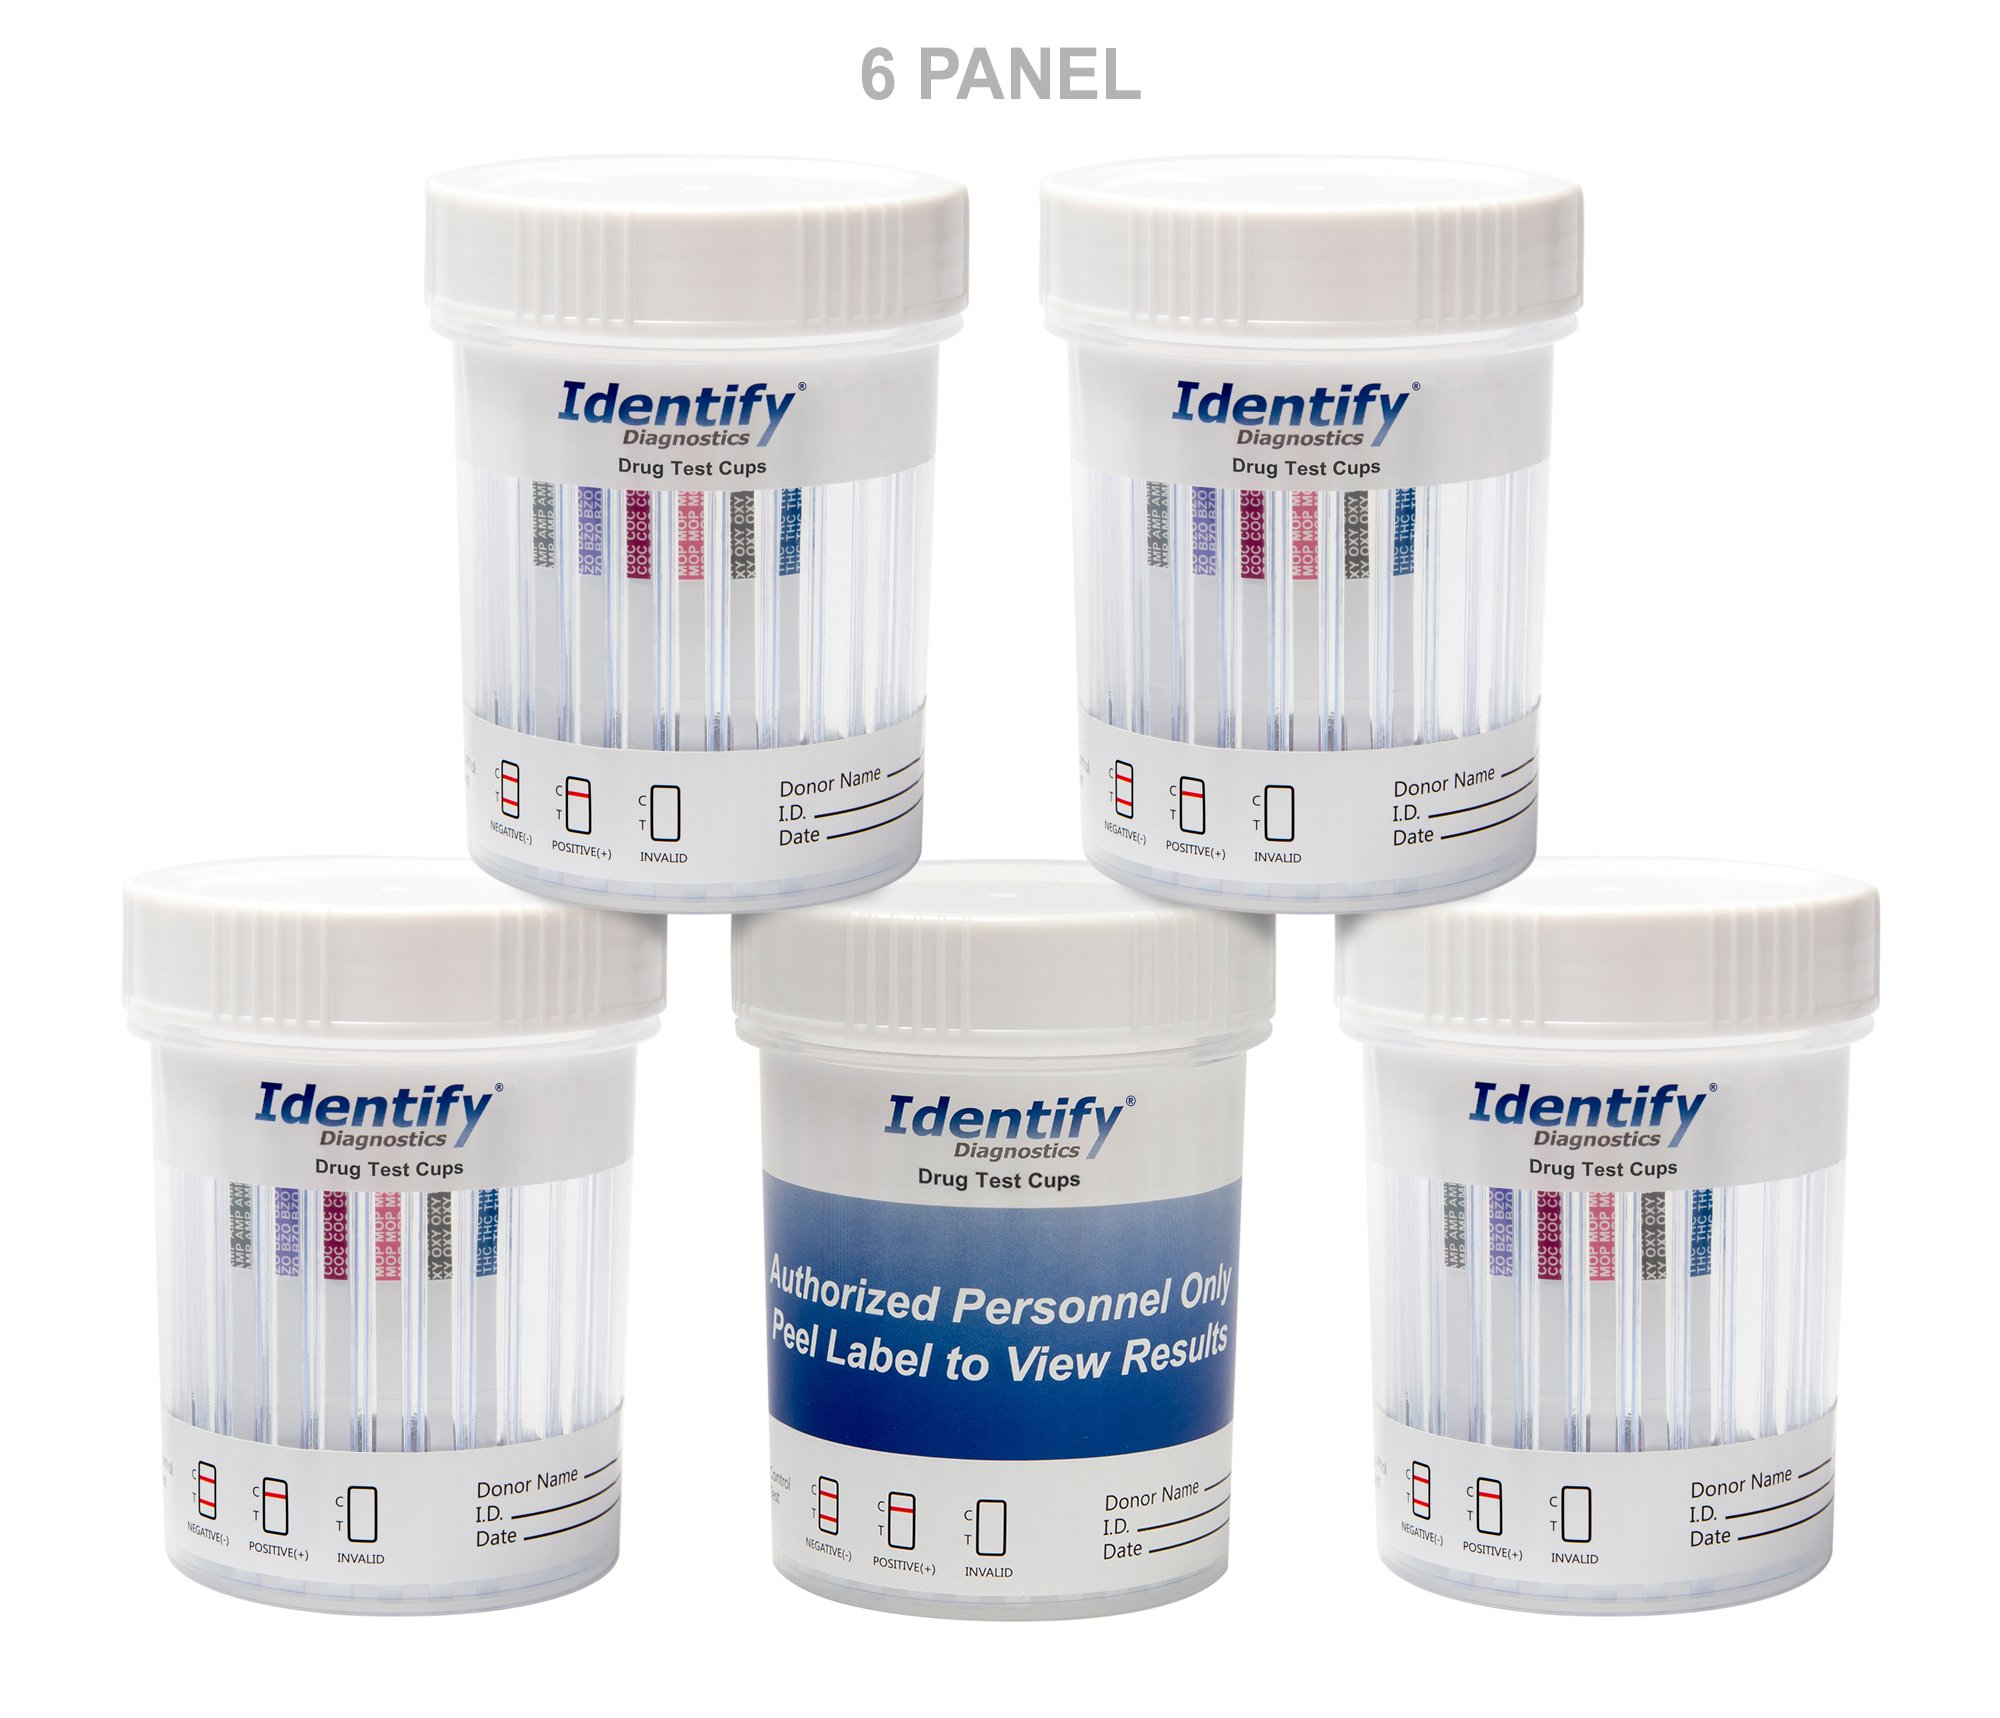 5 Pack Identify Diagnostics 6 Panel Drug Test Cup Testing Instantly for 6 Different Drugs: (THC), (OXY), (MOP), (COC), (BZO), (AMP) #ID-CP6